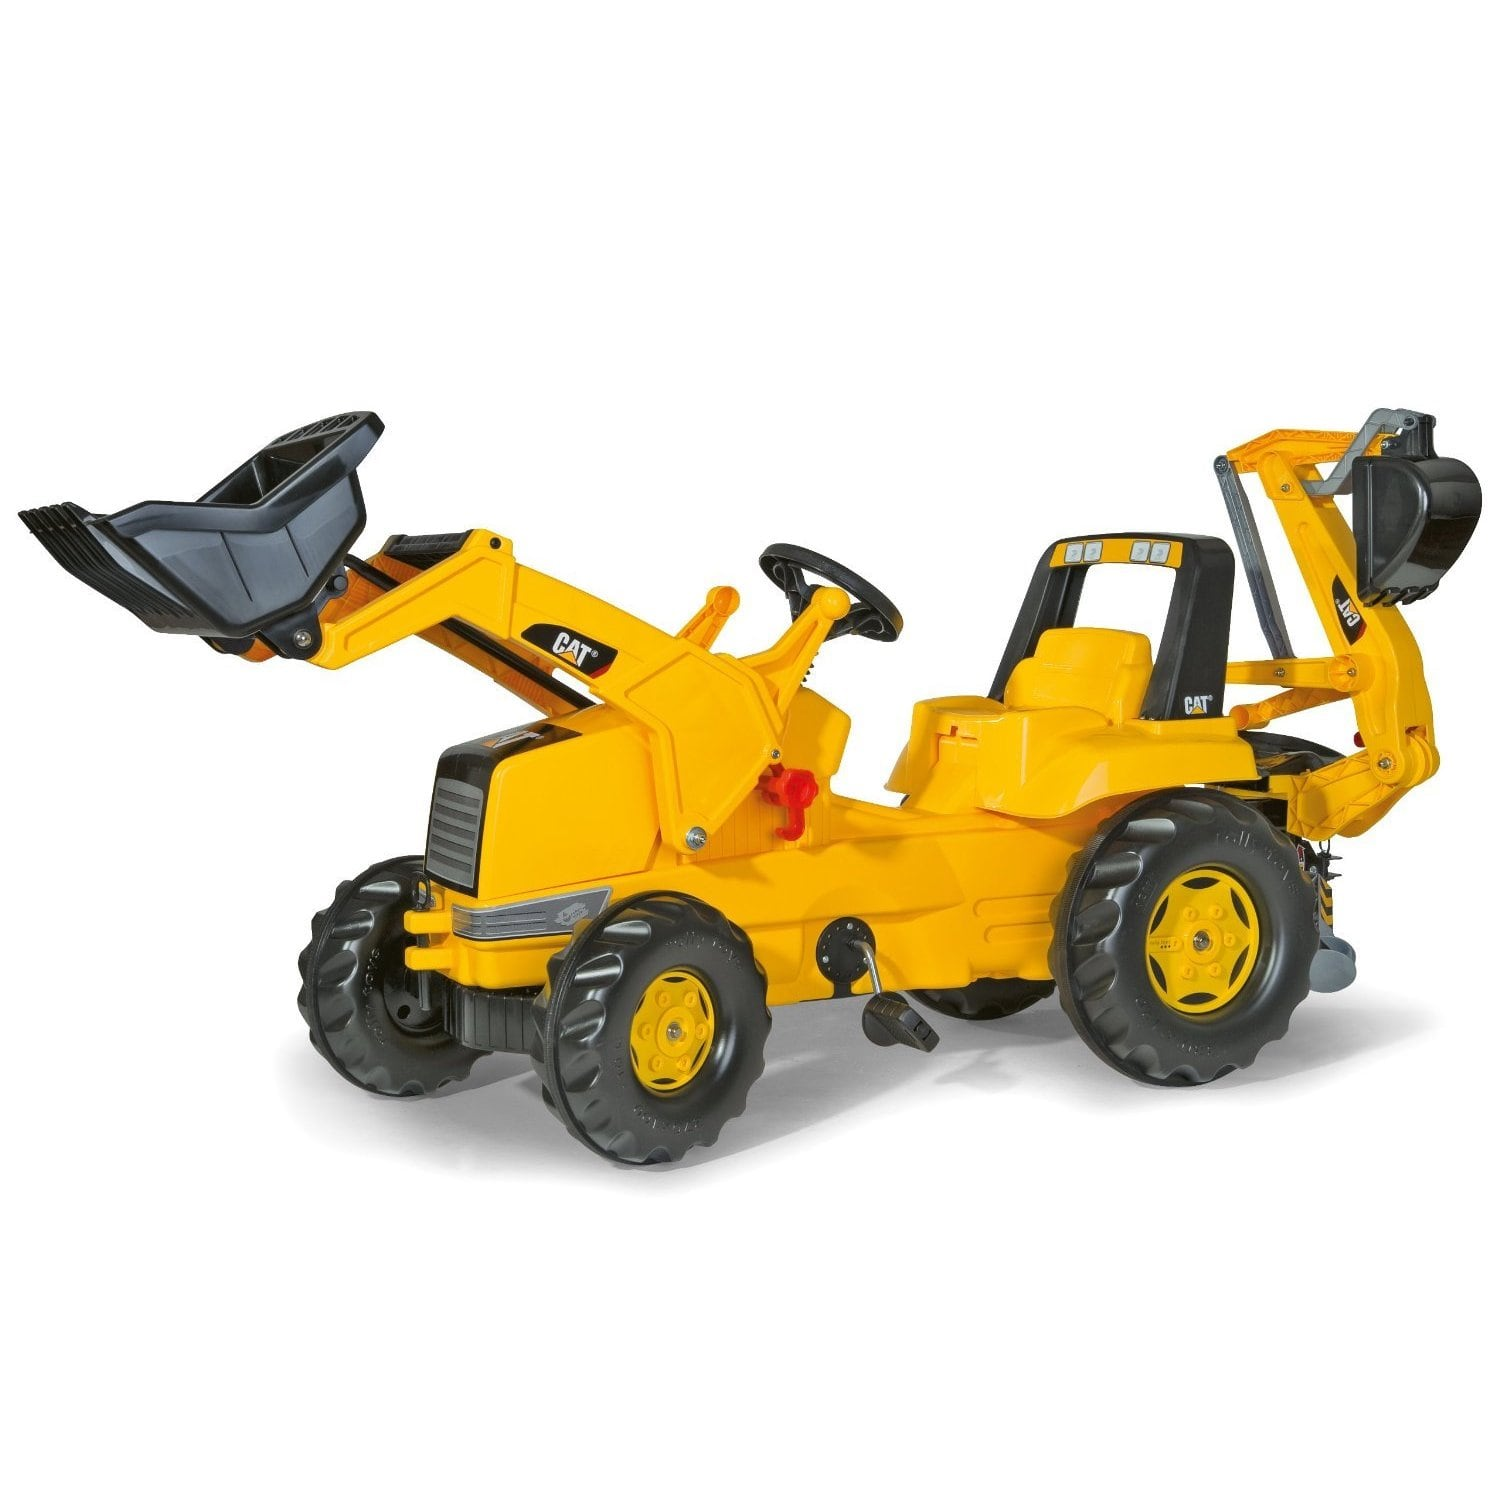 Kettler Cat Front Loader and Backhoe Ride-On by Overstock